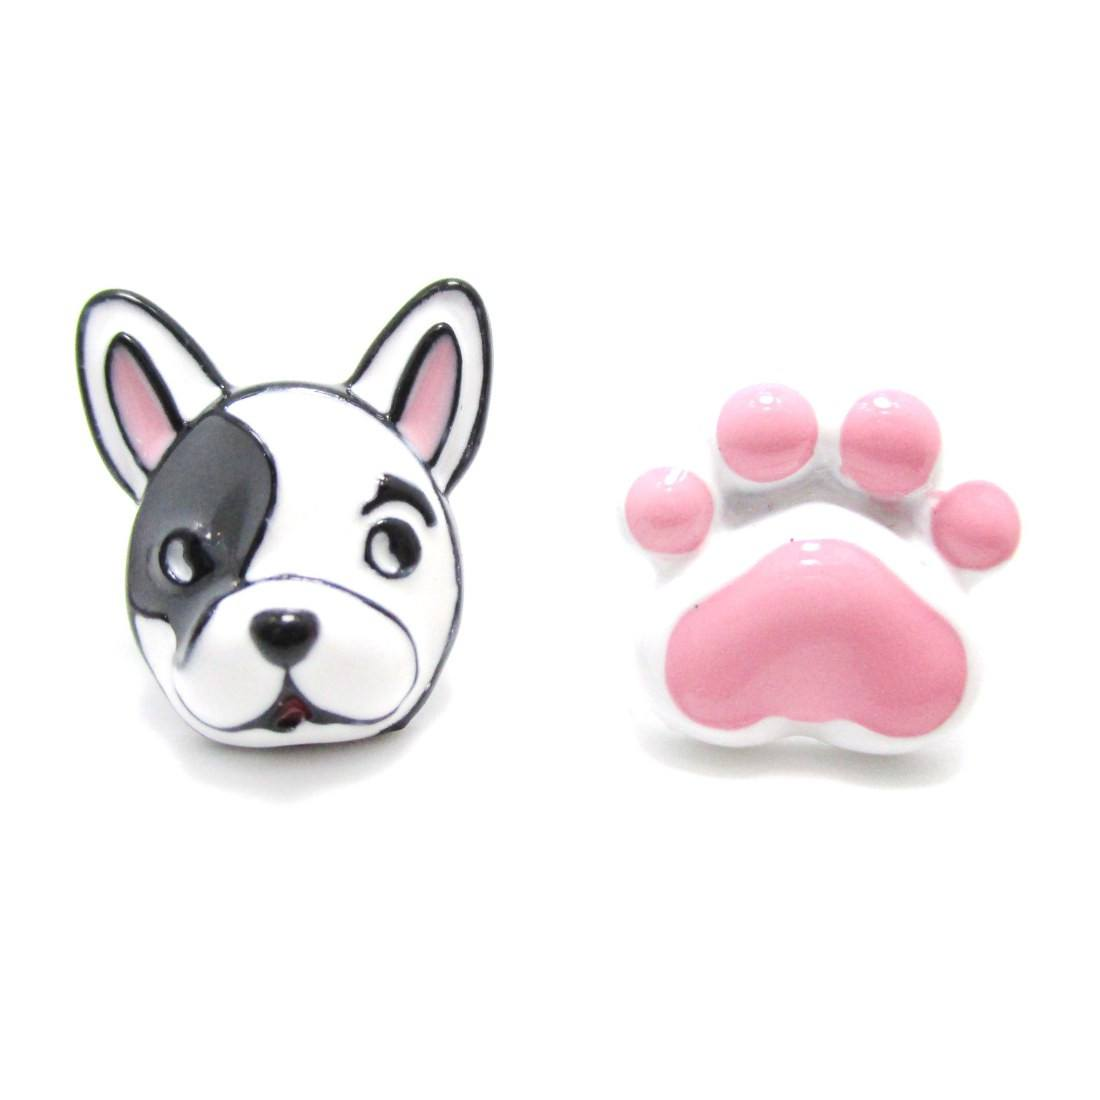 Boston Terrier Face and Paw Shaped Earrings in Pink